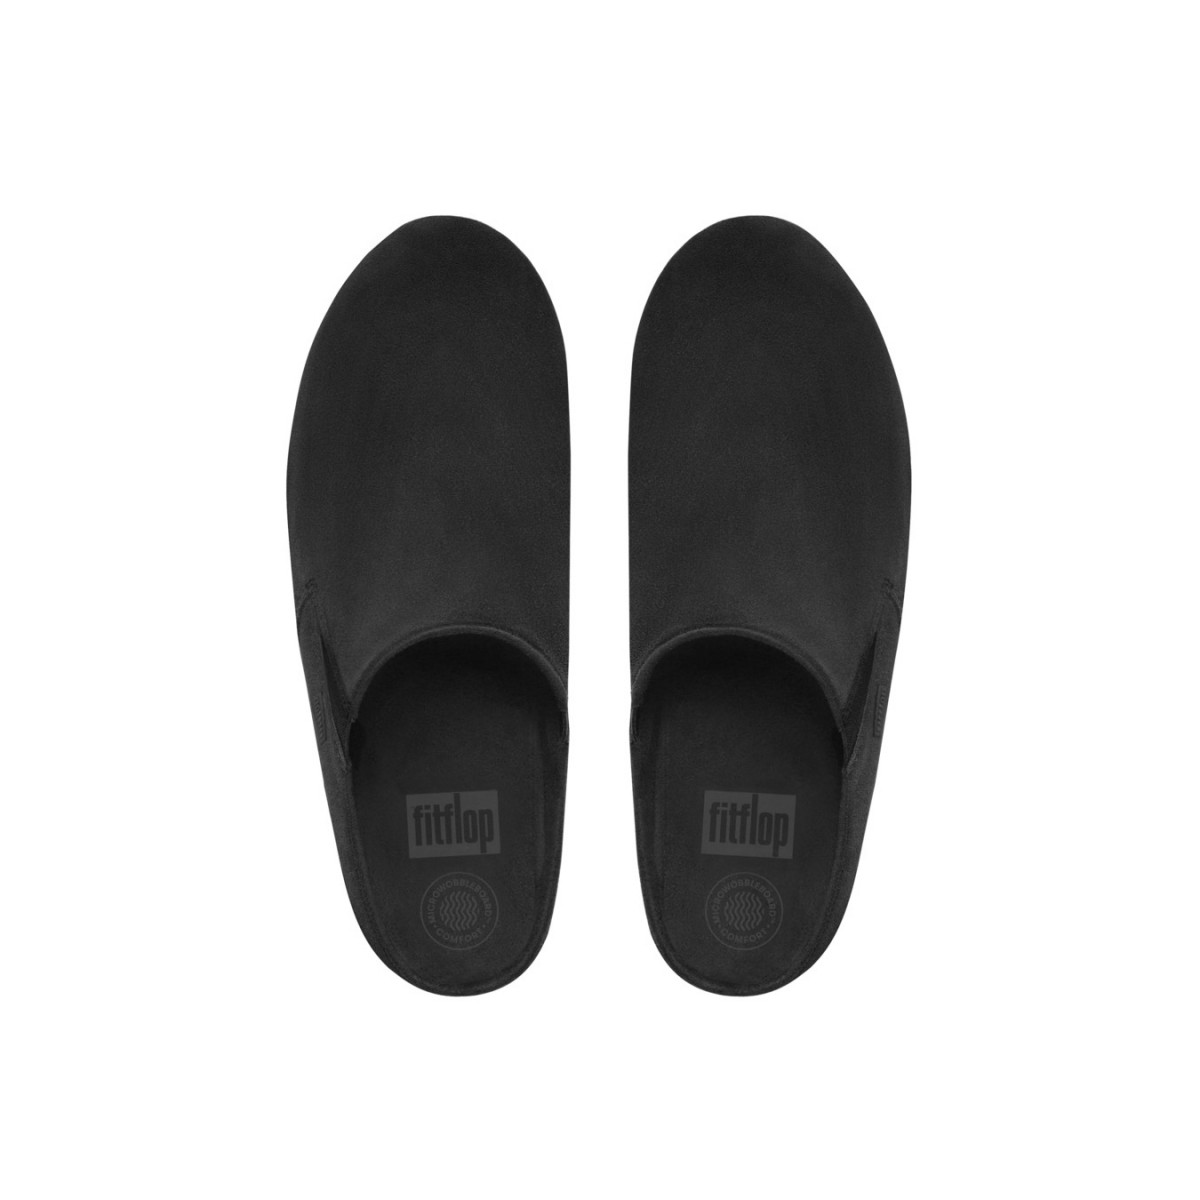 FitFlop Loaf Clogs Black-35